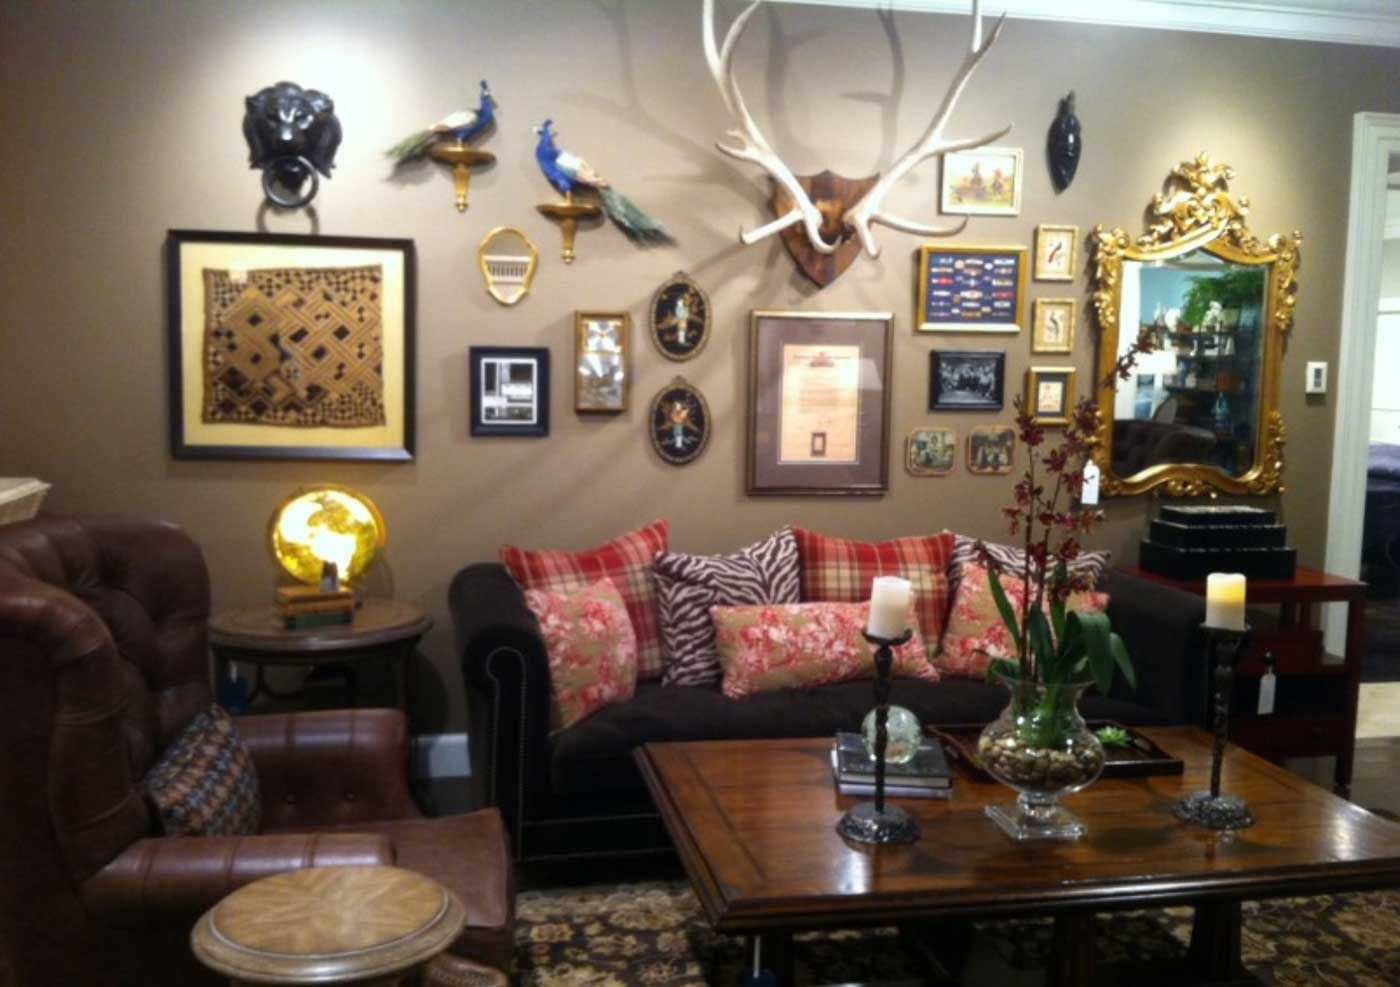 Hunting Decor For Living Room Interior Paint Color Schemes Check More At Http Mindlessapparel C Hunting Room Decor Wall Decor Living Room Living Room Decor Hunting living room ideas